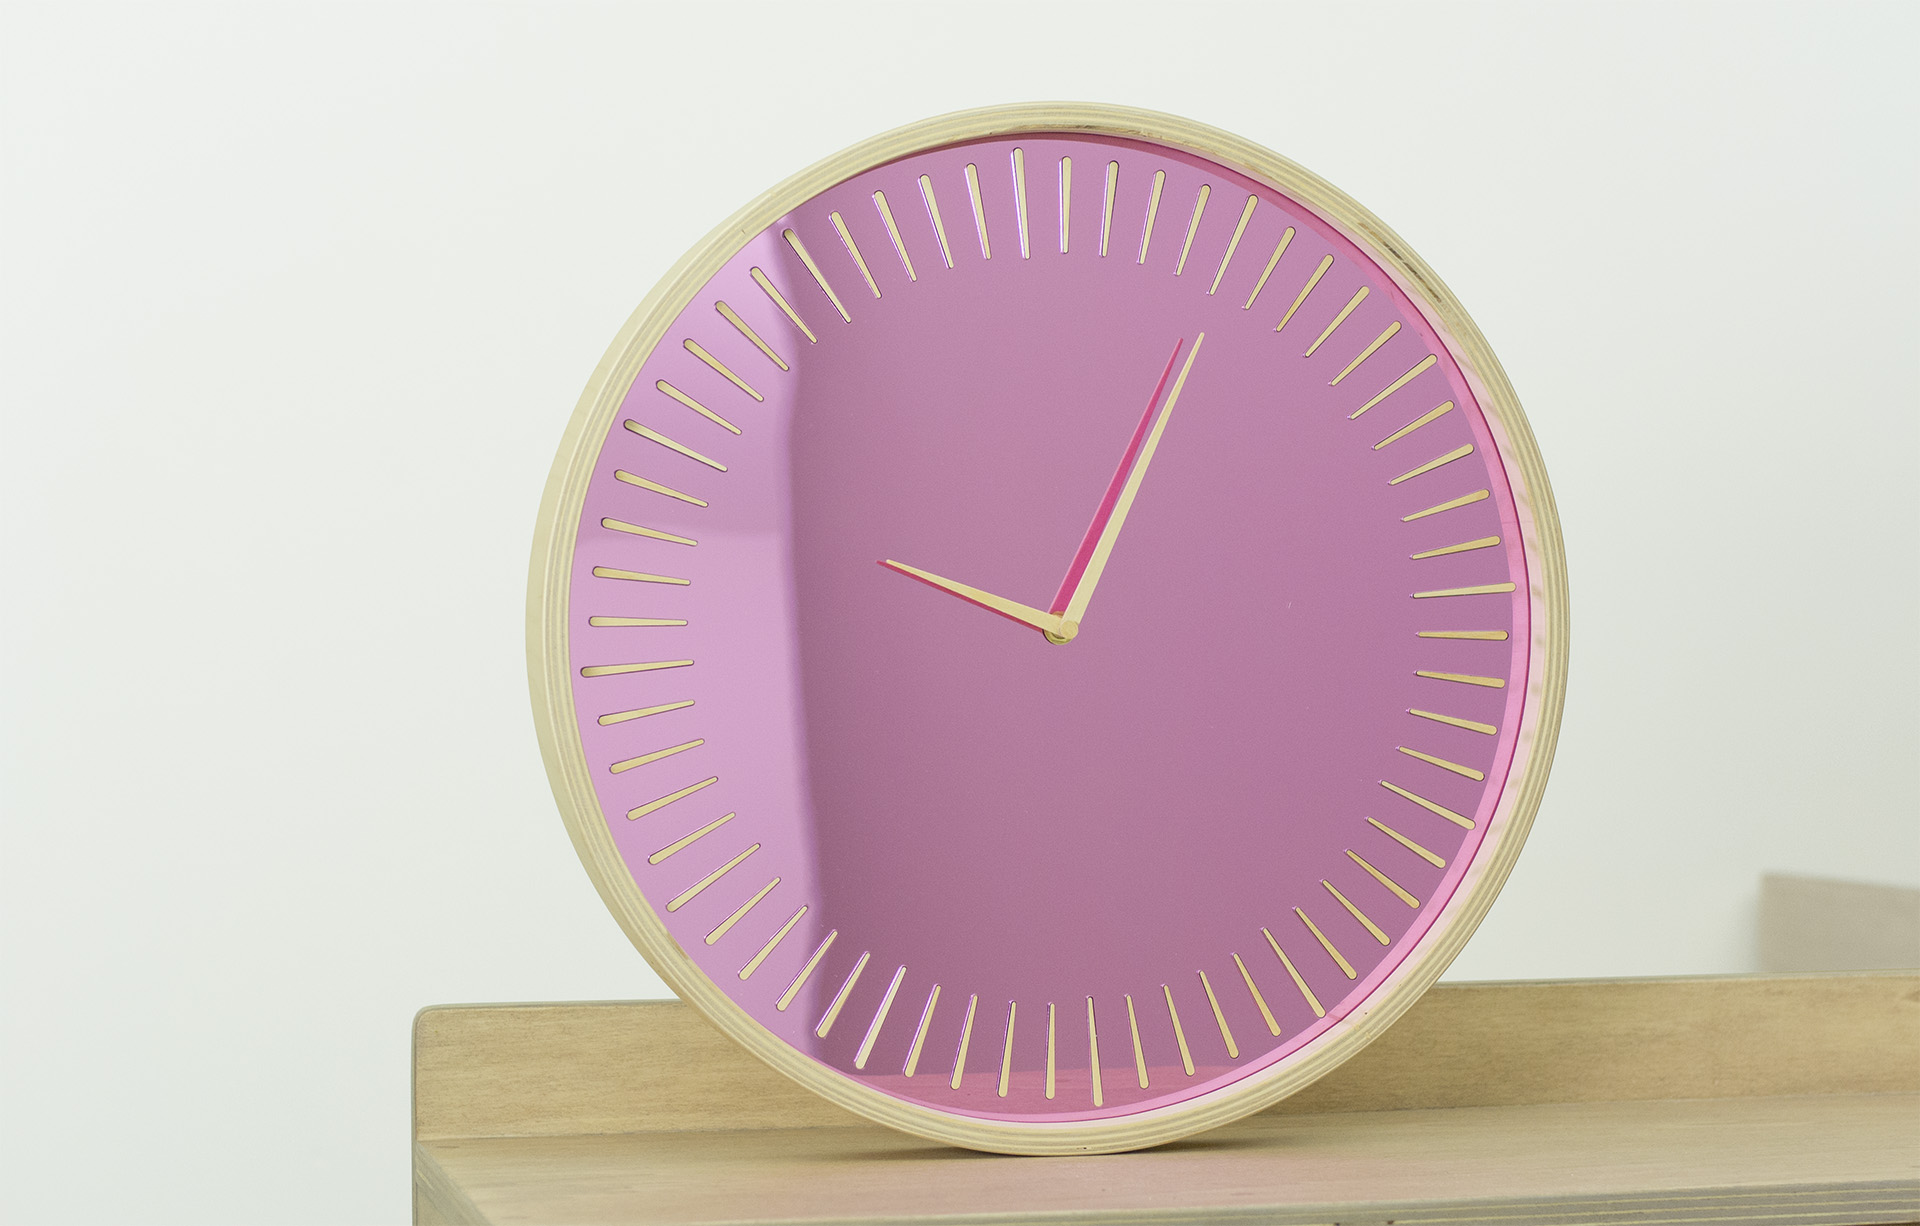 mirror, wood, wall clock, art, design, clock, architecture, interior design